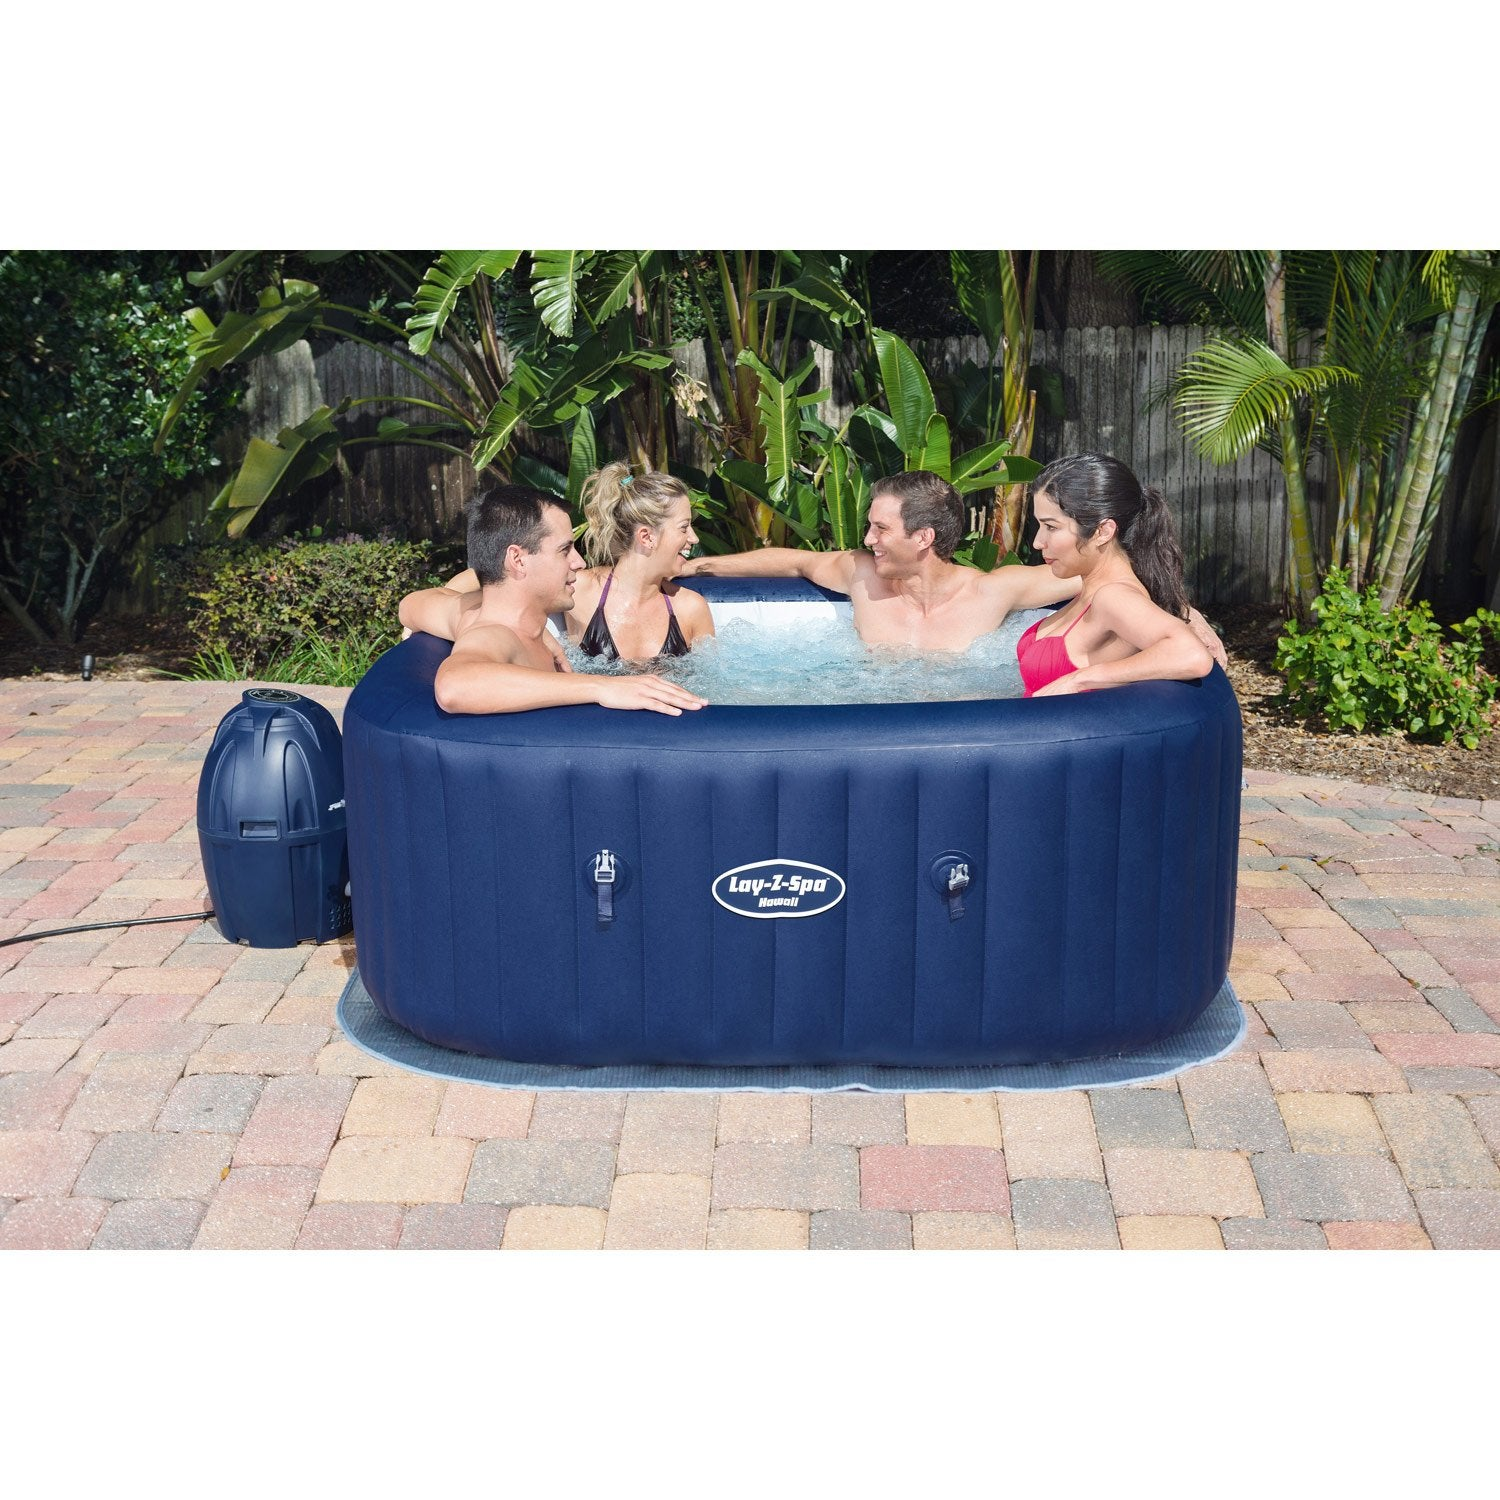 Spa Leroy Merlin Intex 6 Places spa gonflable bestway hawaï carré | jacuzzi gonflable, spa